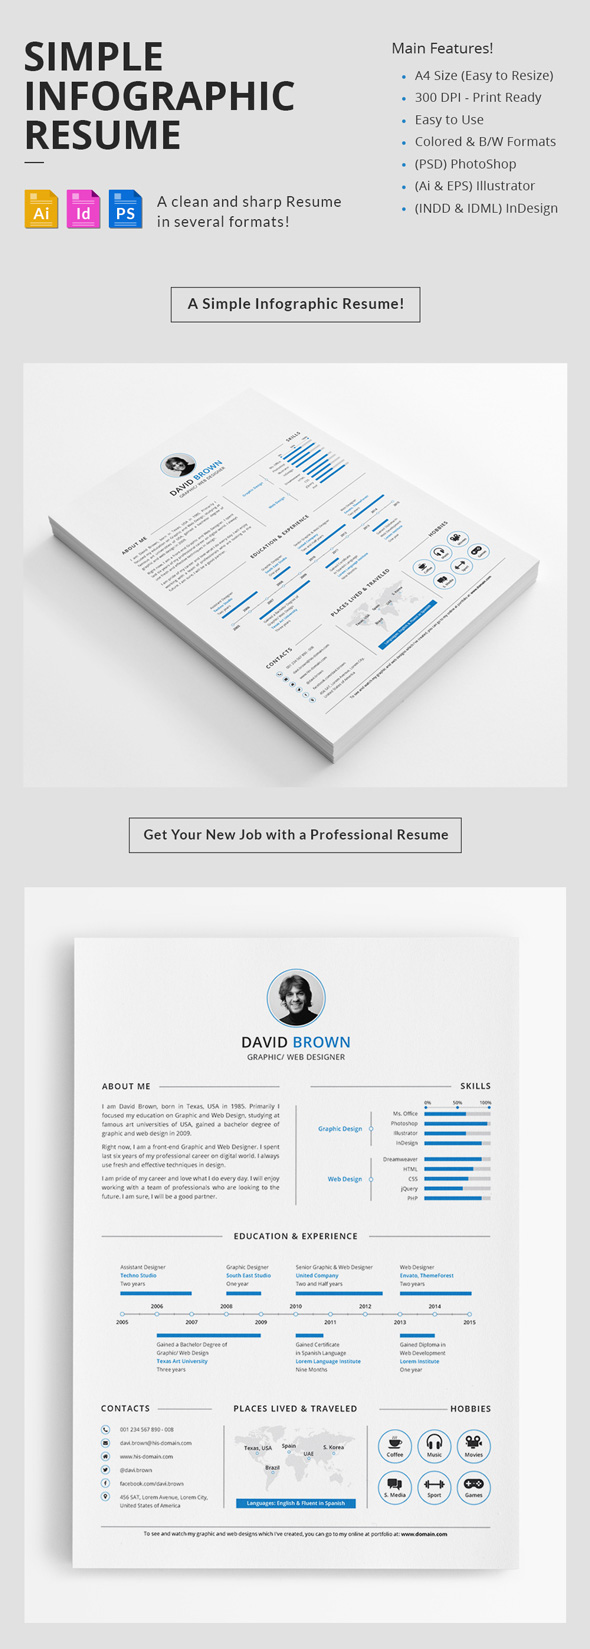 resume Business Resume Design 15 creative infographic resume templates minimal template design